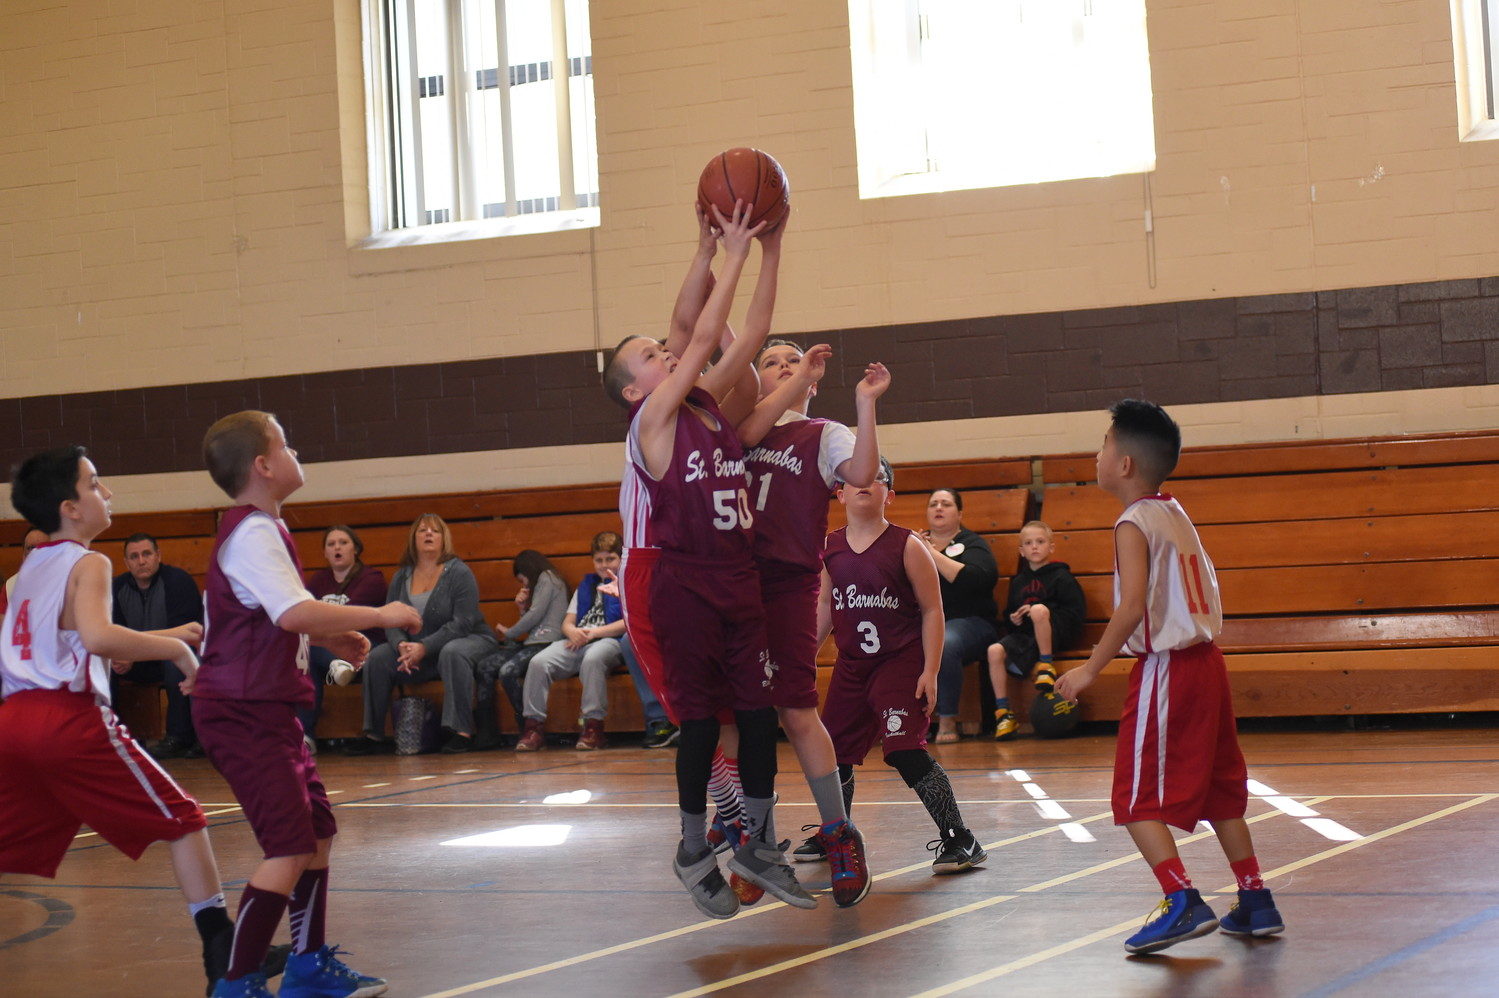 The fourth-grade teams from St. Barnabas the Apostle of Bellmore and St. Aloysius of Great Neck faced off on Feb. 25.